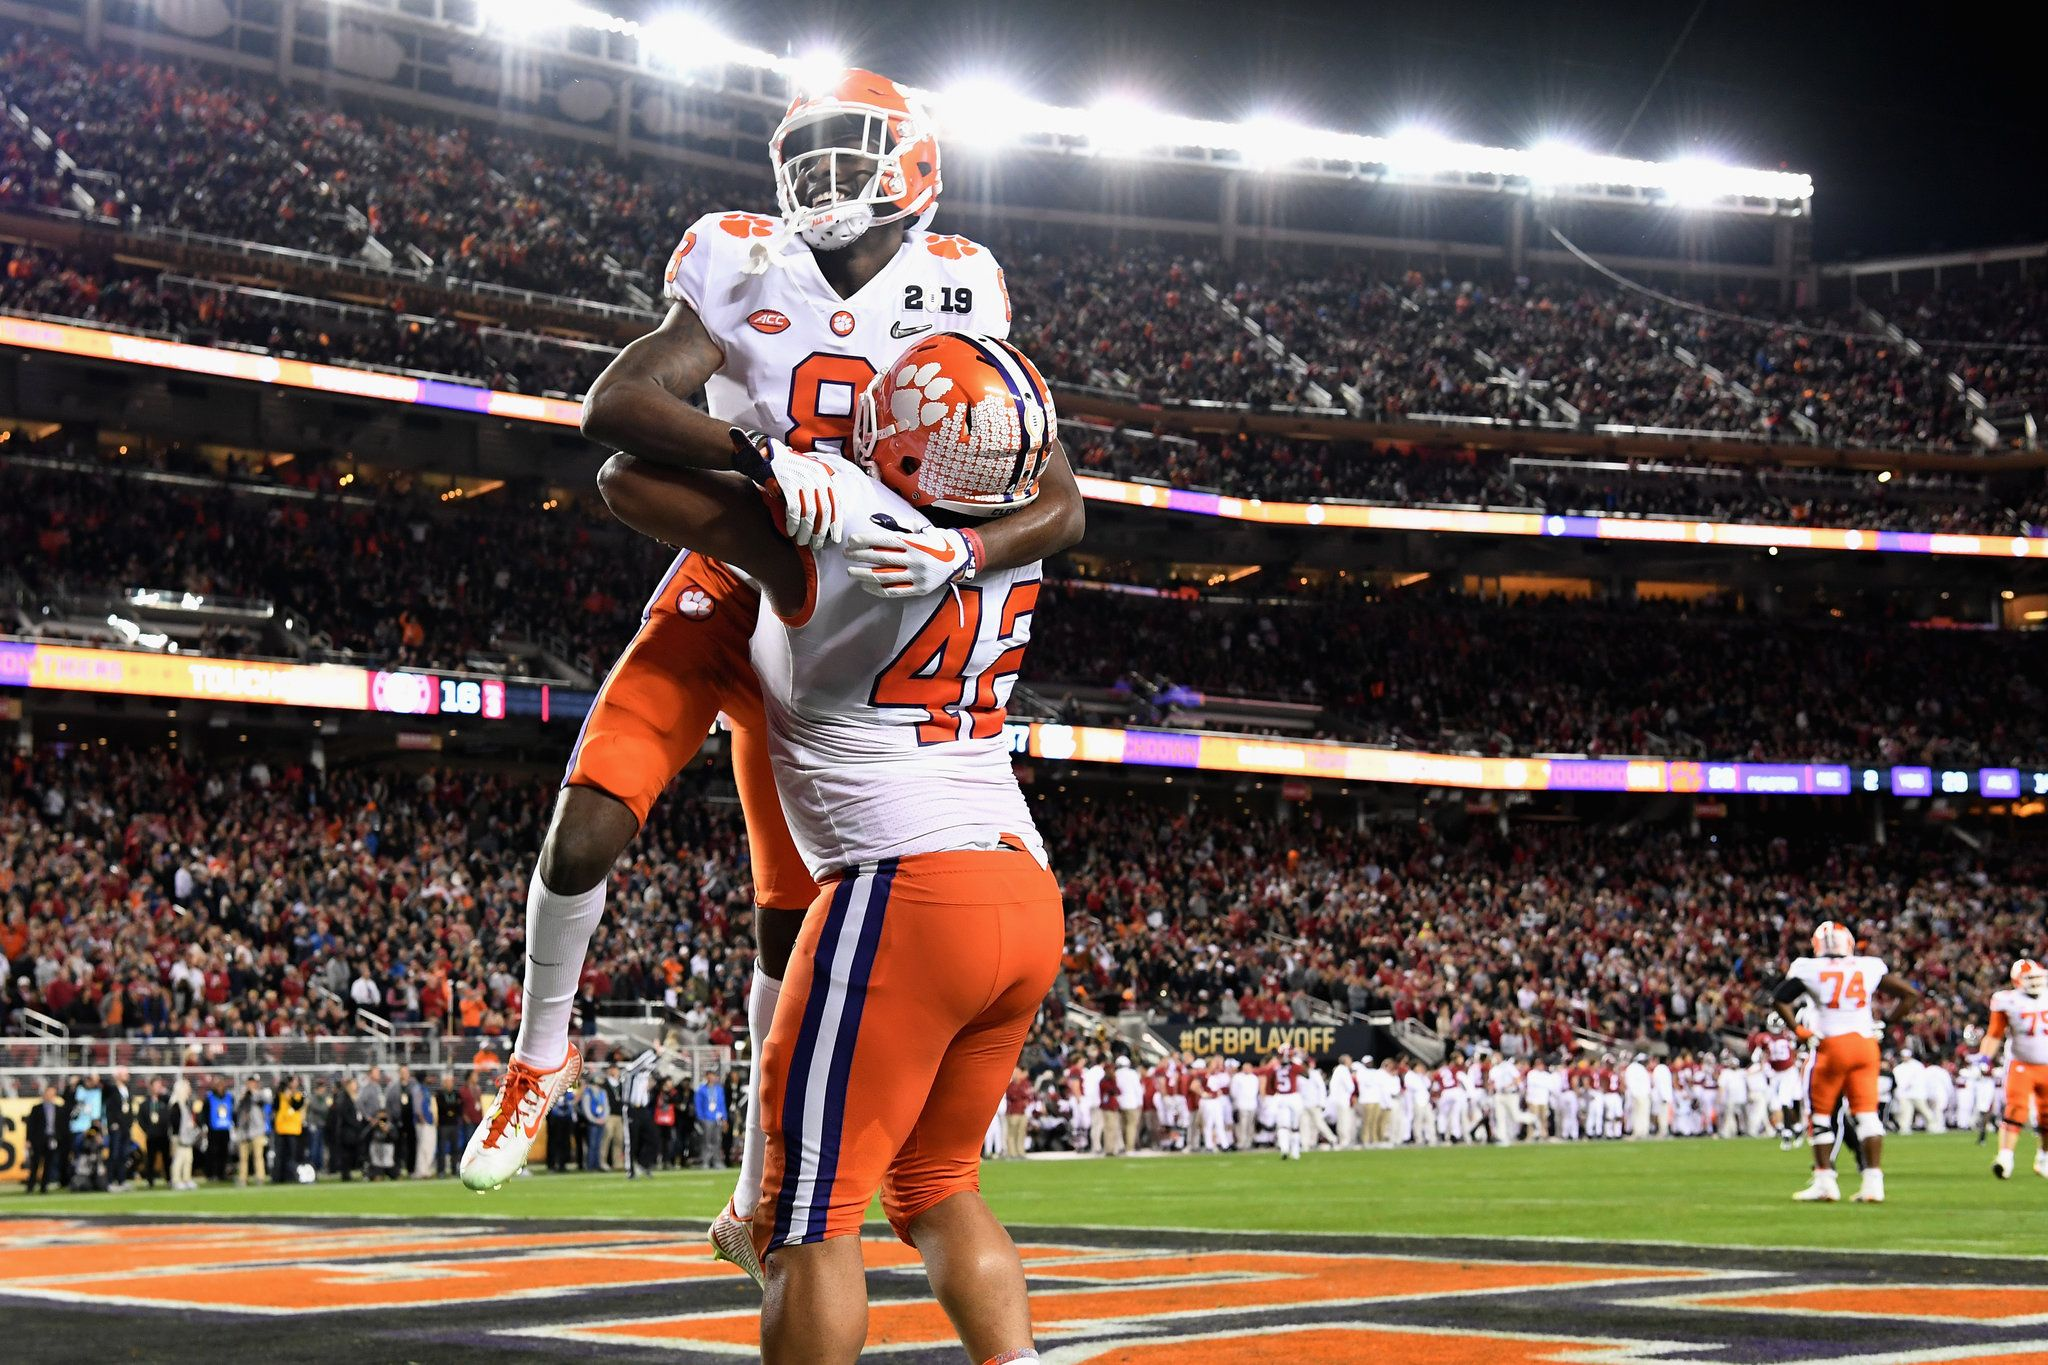 Clemson Leaves No Doubt in National Championship Thrashing